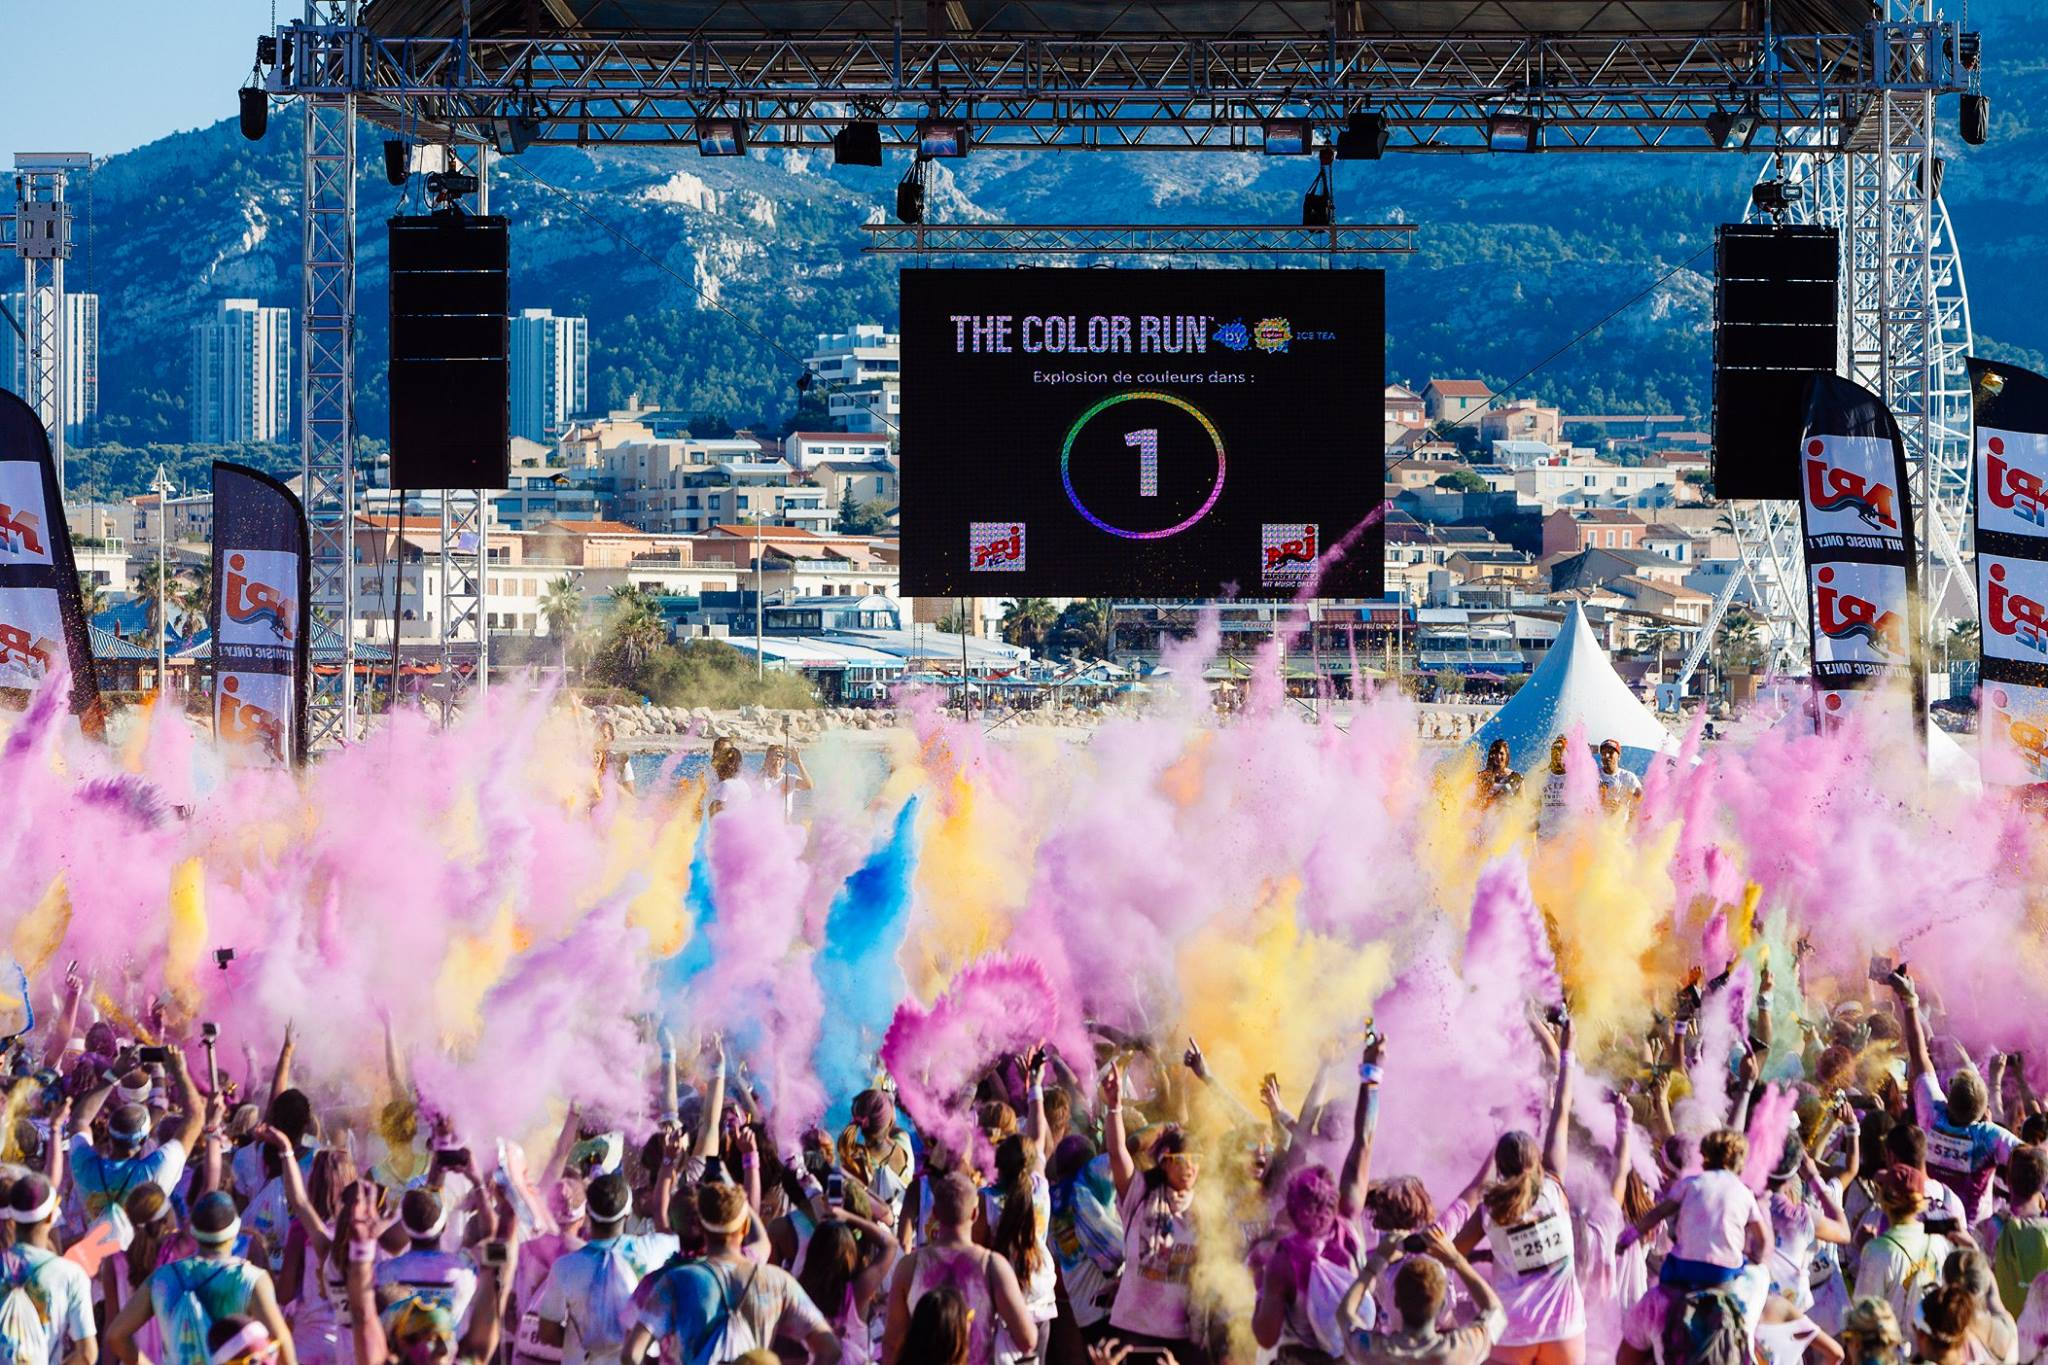 Reportage Les Meilleures Photos De The Color Run By